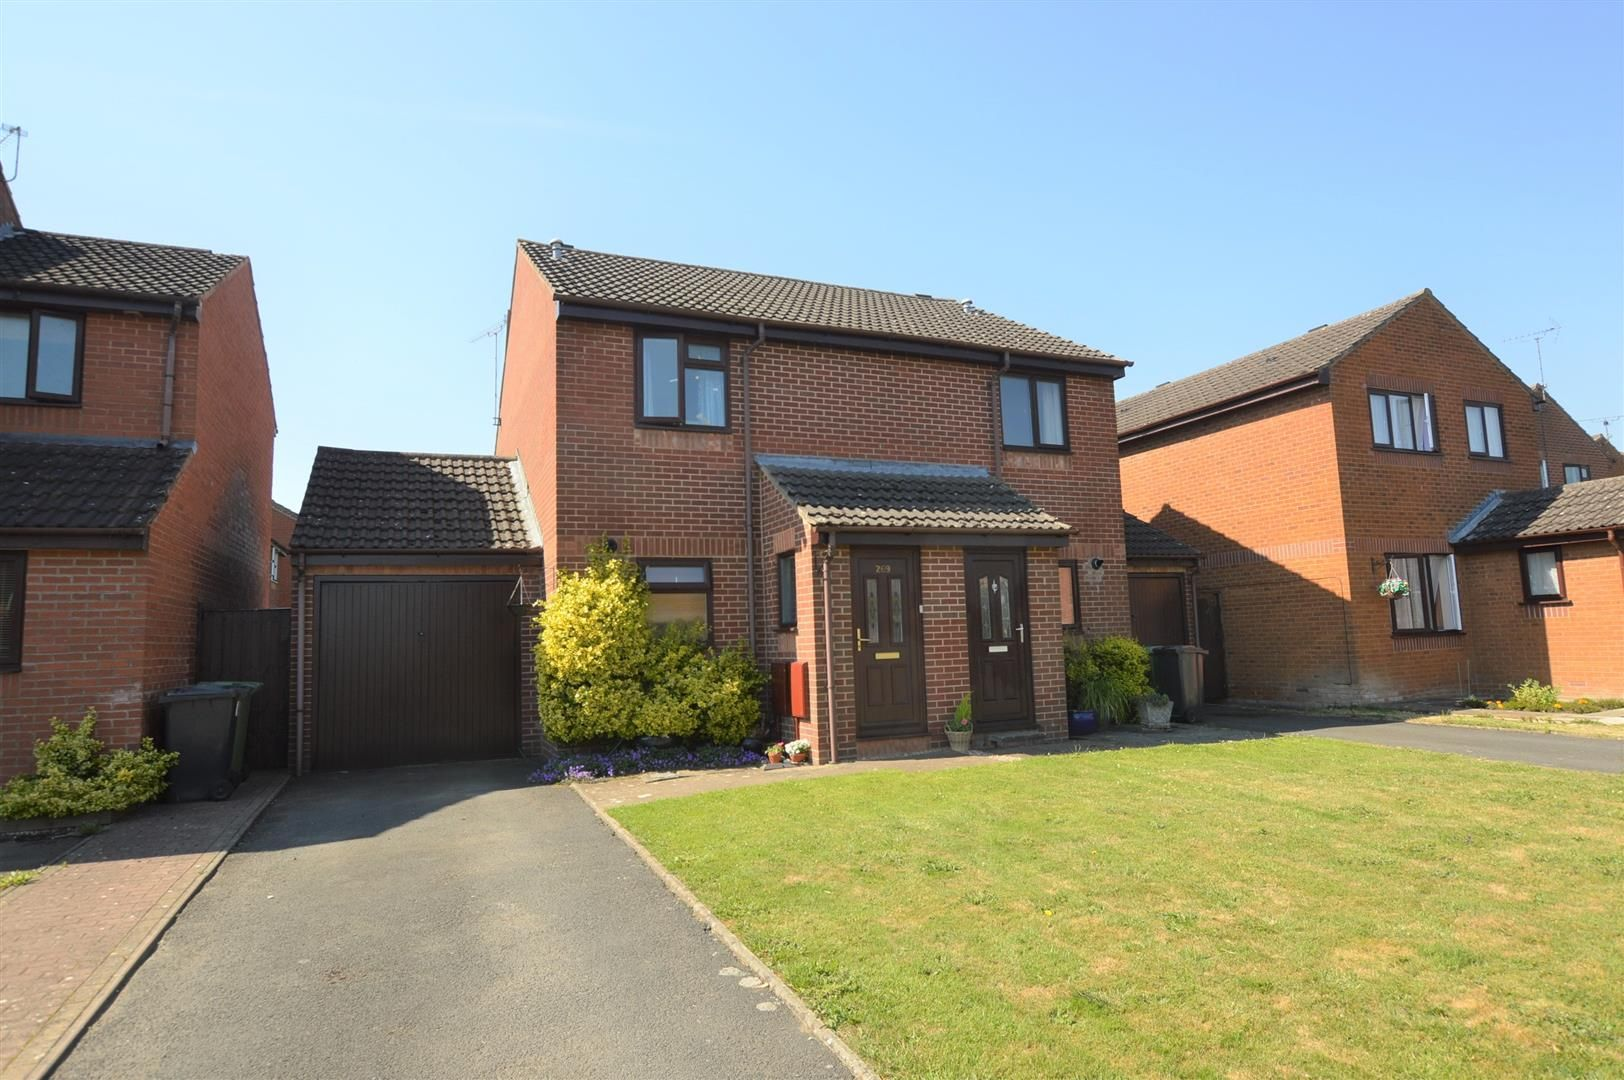 2 bed semi-detached for sale in Leominster 1